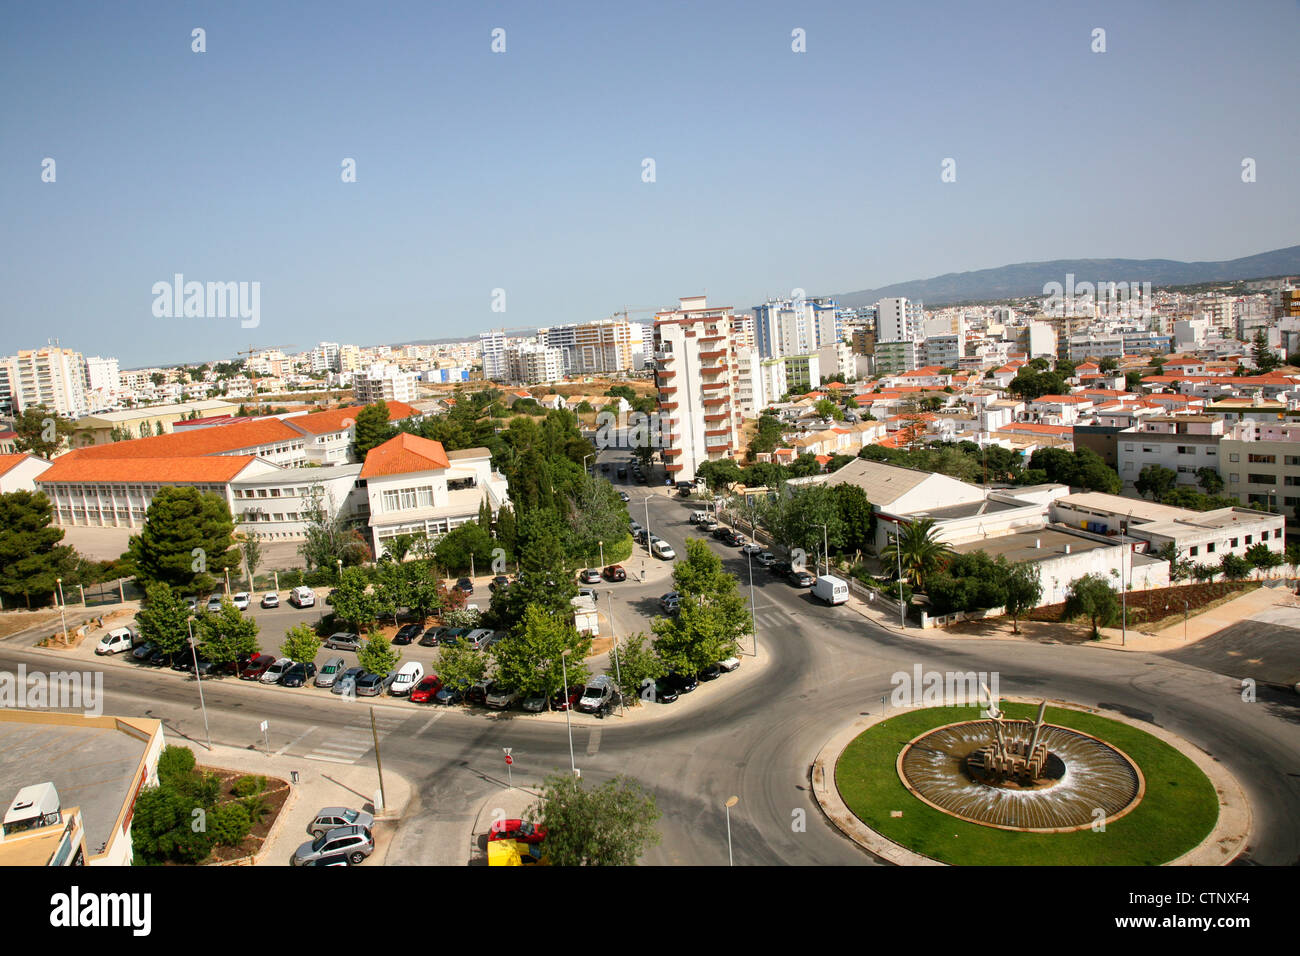 Portimao Buildings in town - Stock Image